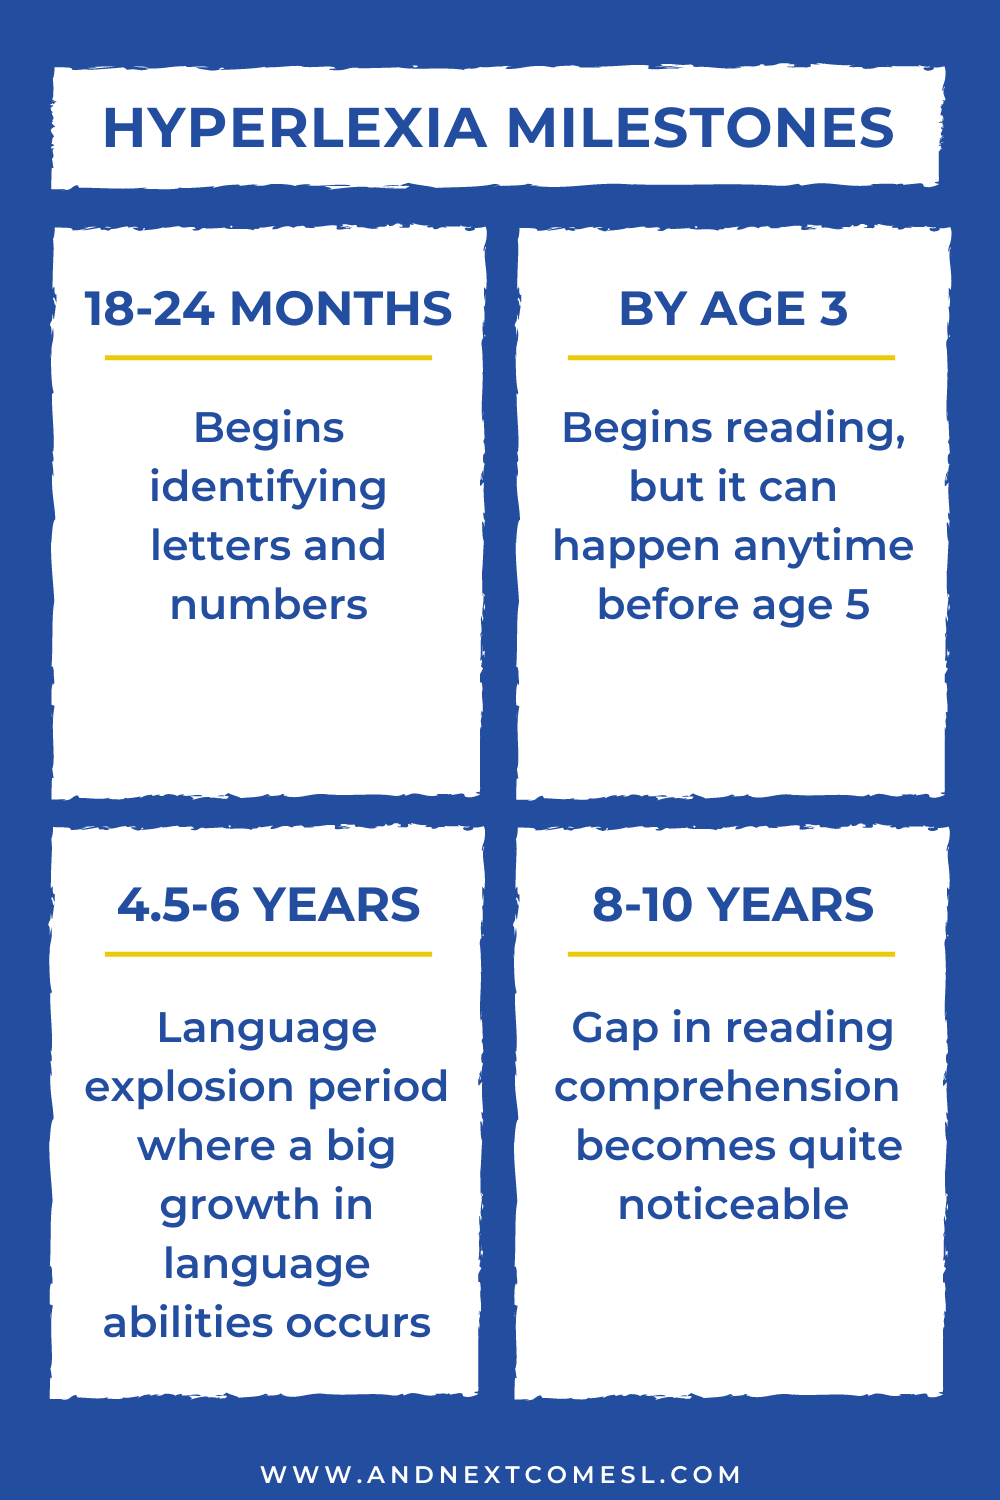 Important milestones for hyperlexia and language development